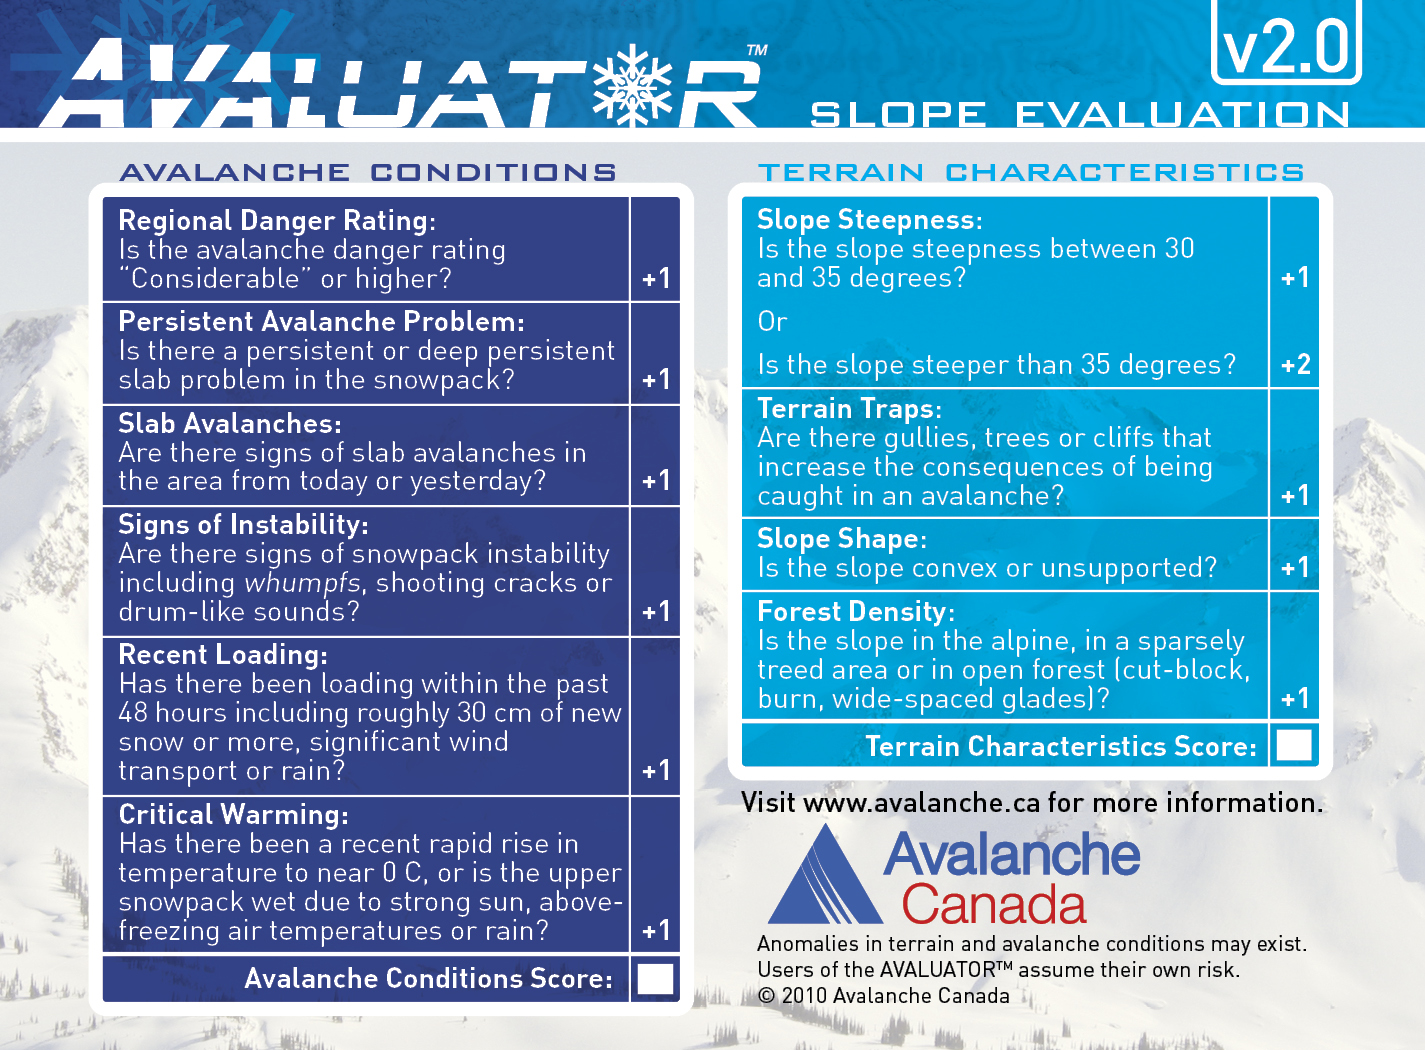 The Avaluator Slope Evaluation Card.